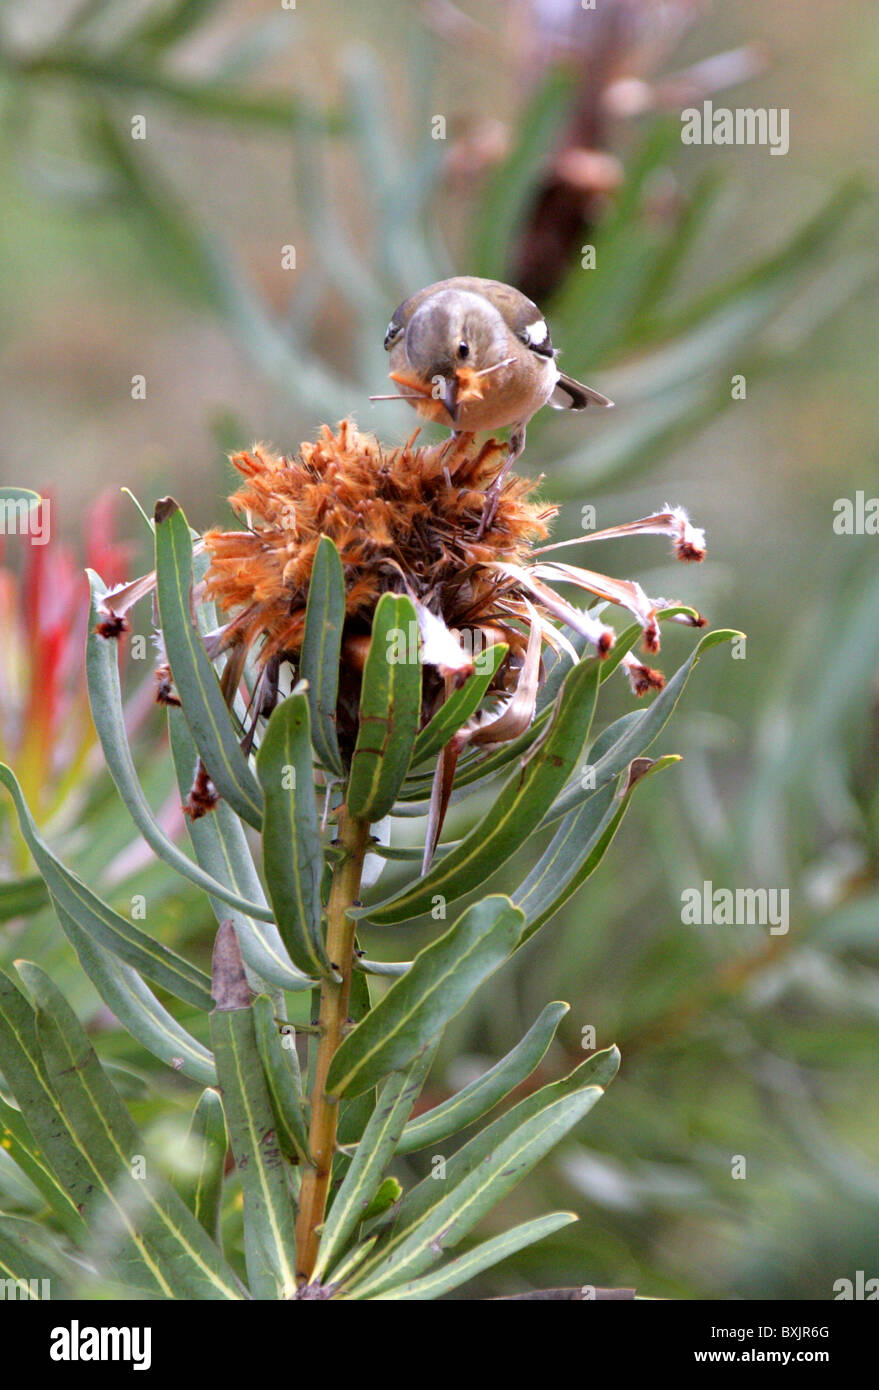 Chaffinch Eating Seeds from a Dead Protea Flower Head. Kirstenbosch Botanical Gardens, Cape Town, South Africa. - Stock Image